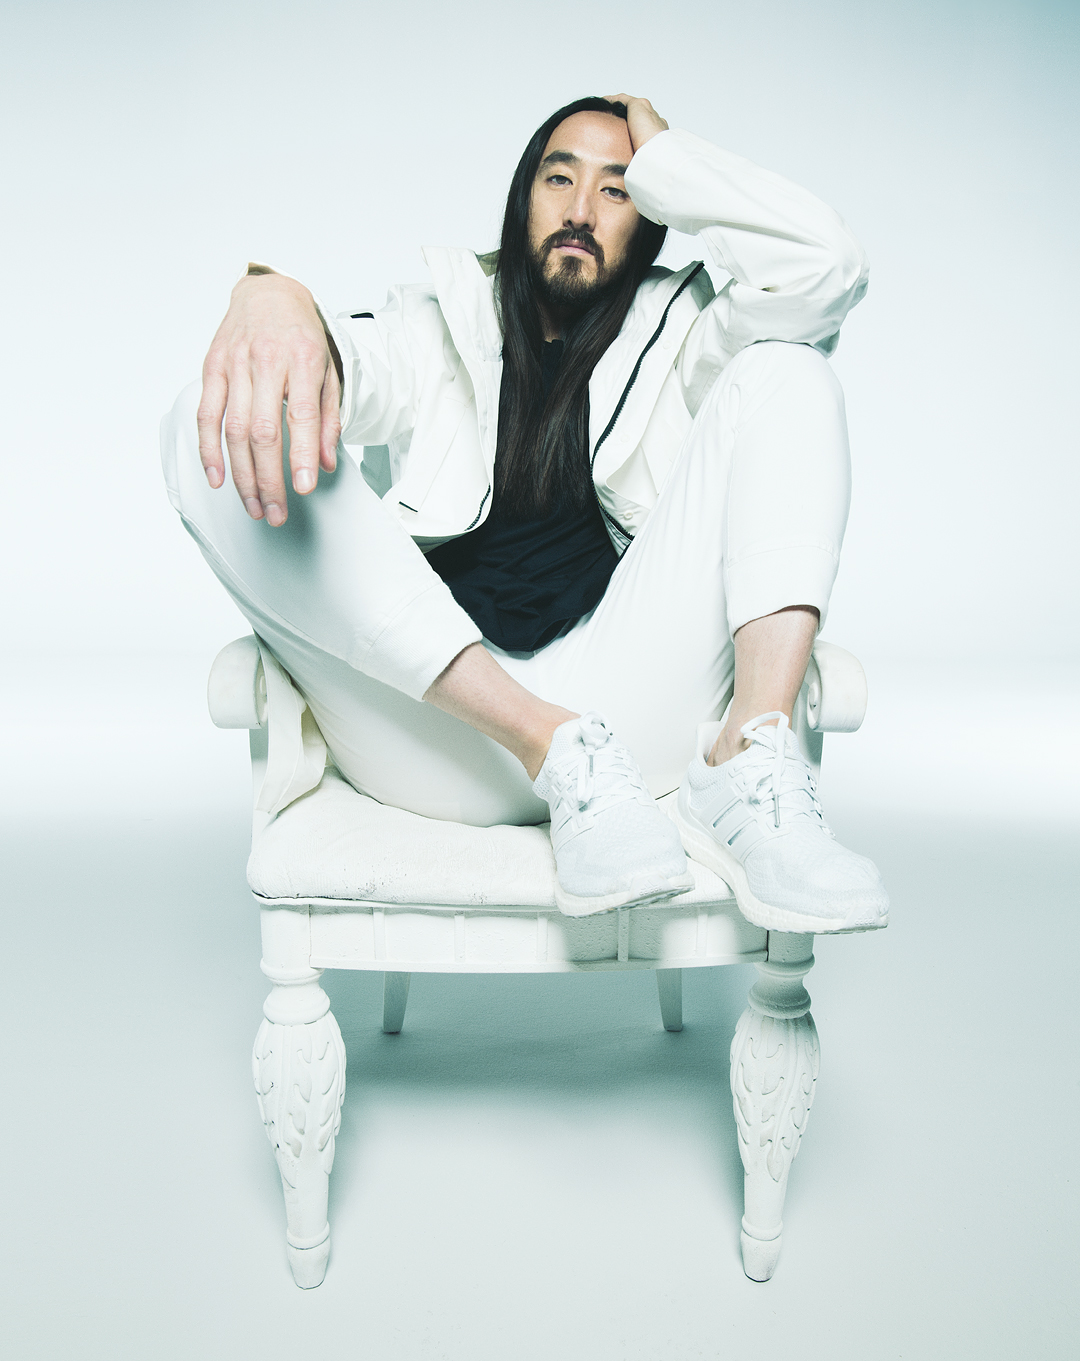 Kolony Gras: Why Steve Aoki's Onstage Antics Feel at Home in New Orleans